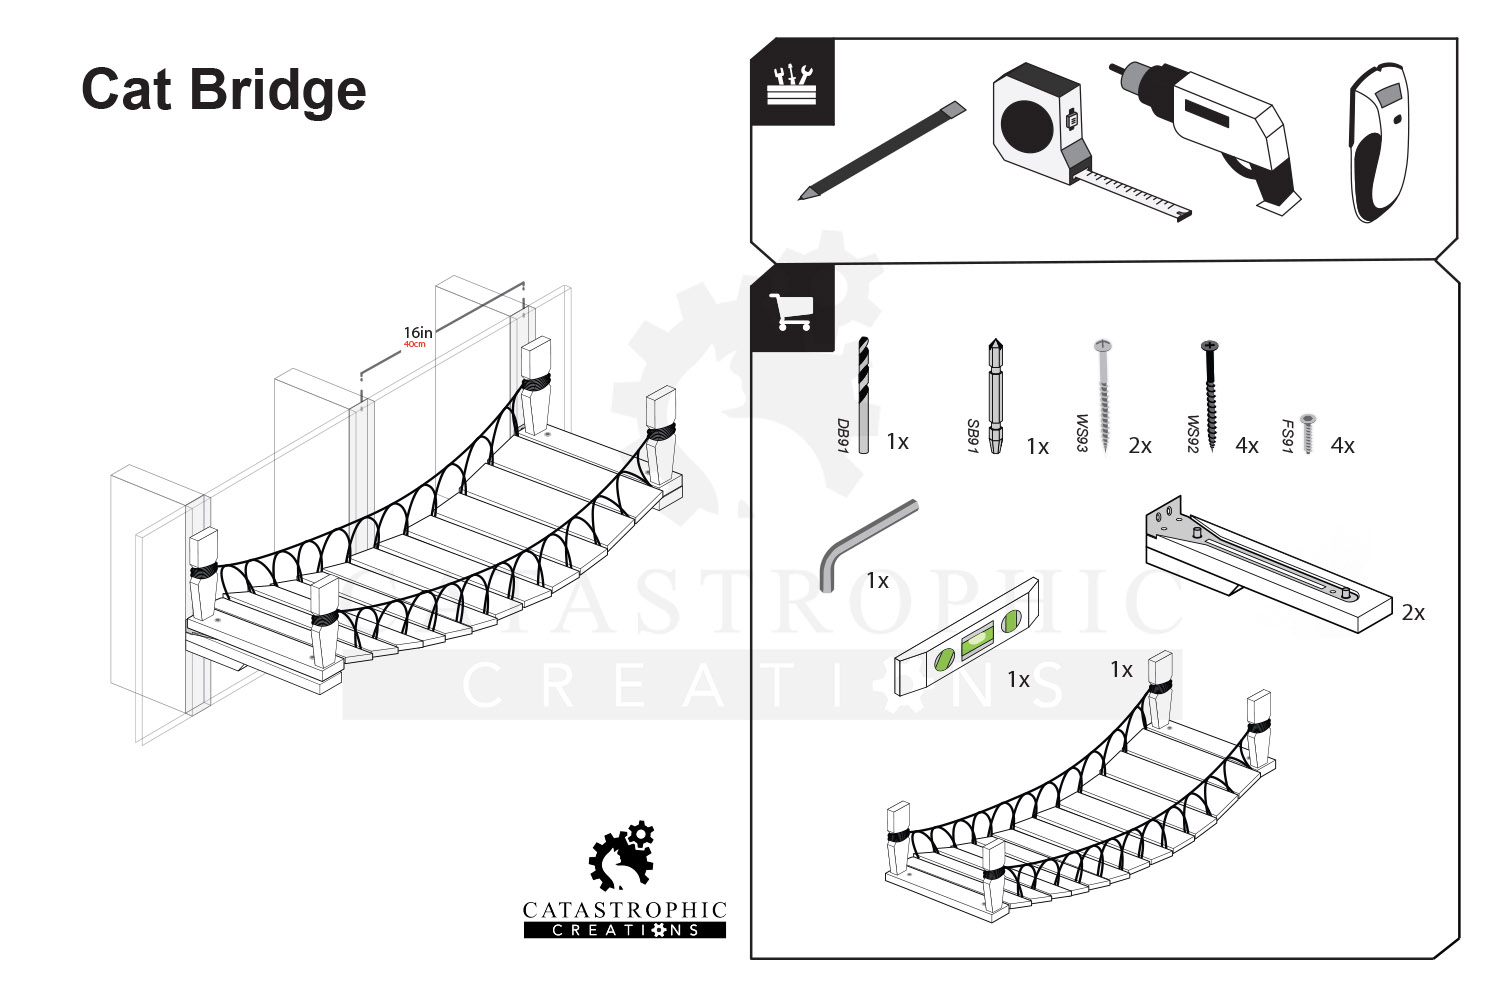 blueprint and items necessary for assembly of cat bridge